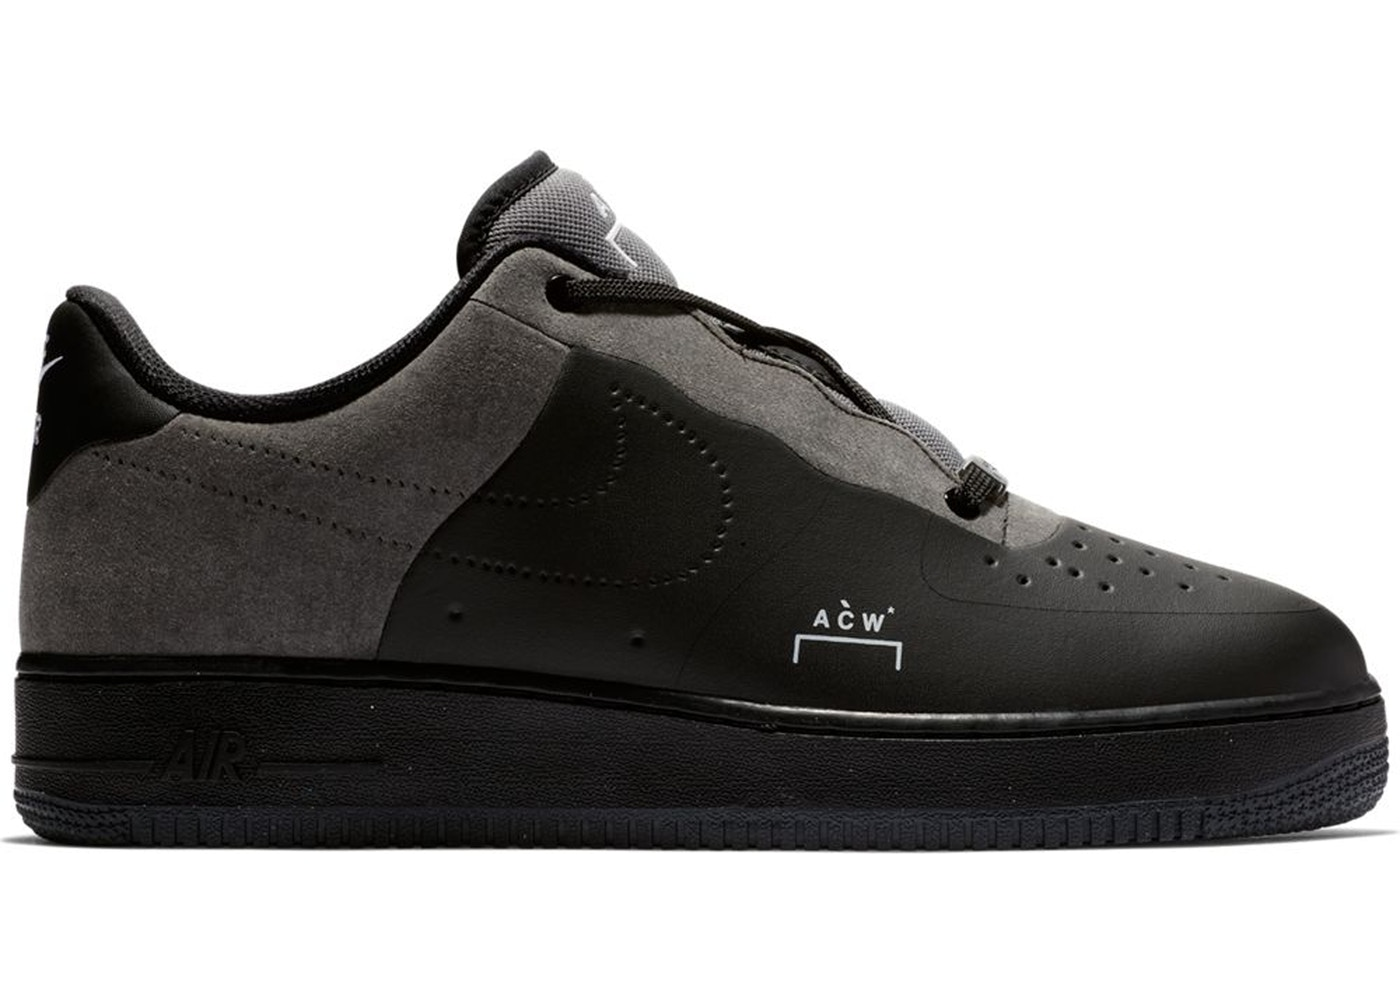 super popular 3015e 74427 Air Force 1 Low A Cold Wall Black - BQ6924-001